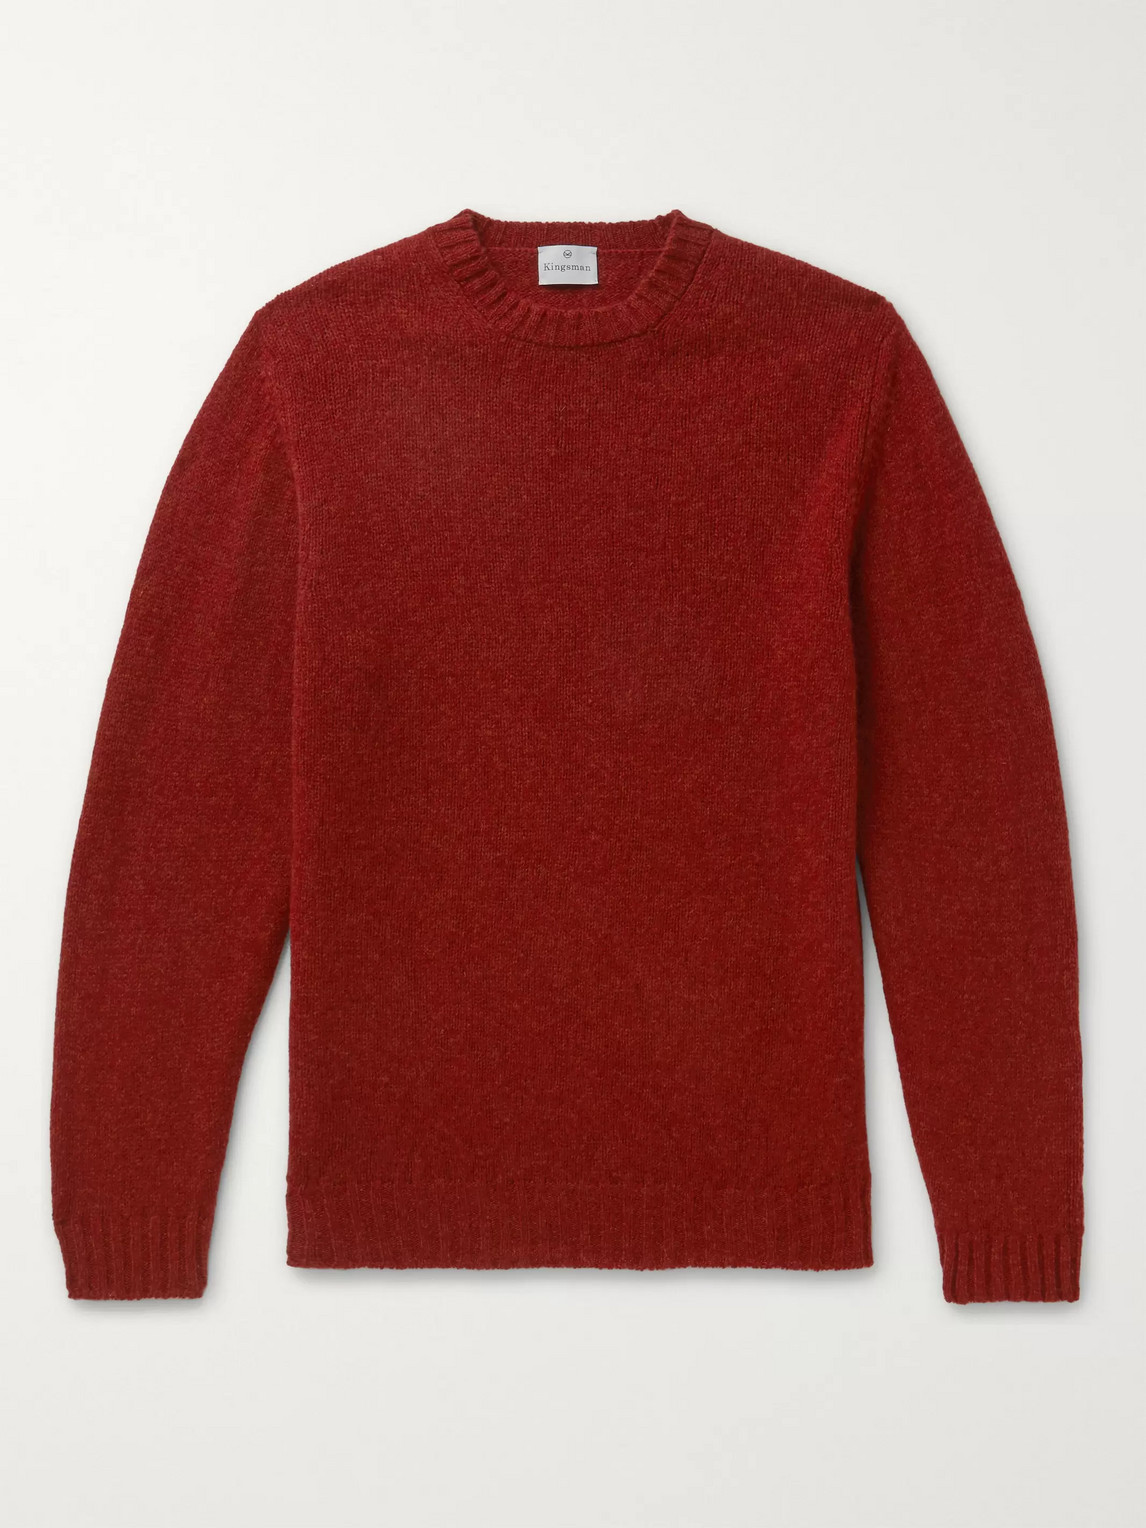 Kingsman Shetland Wool Sweater In Burgundy